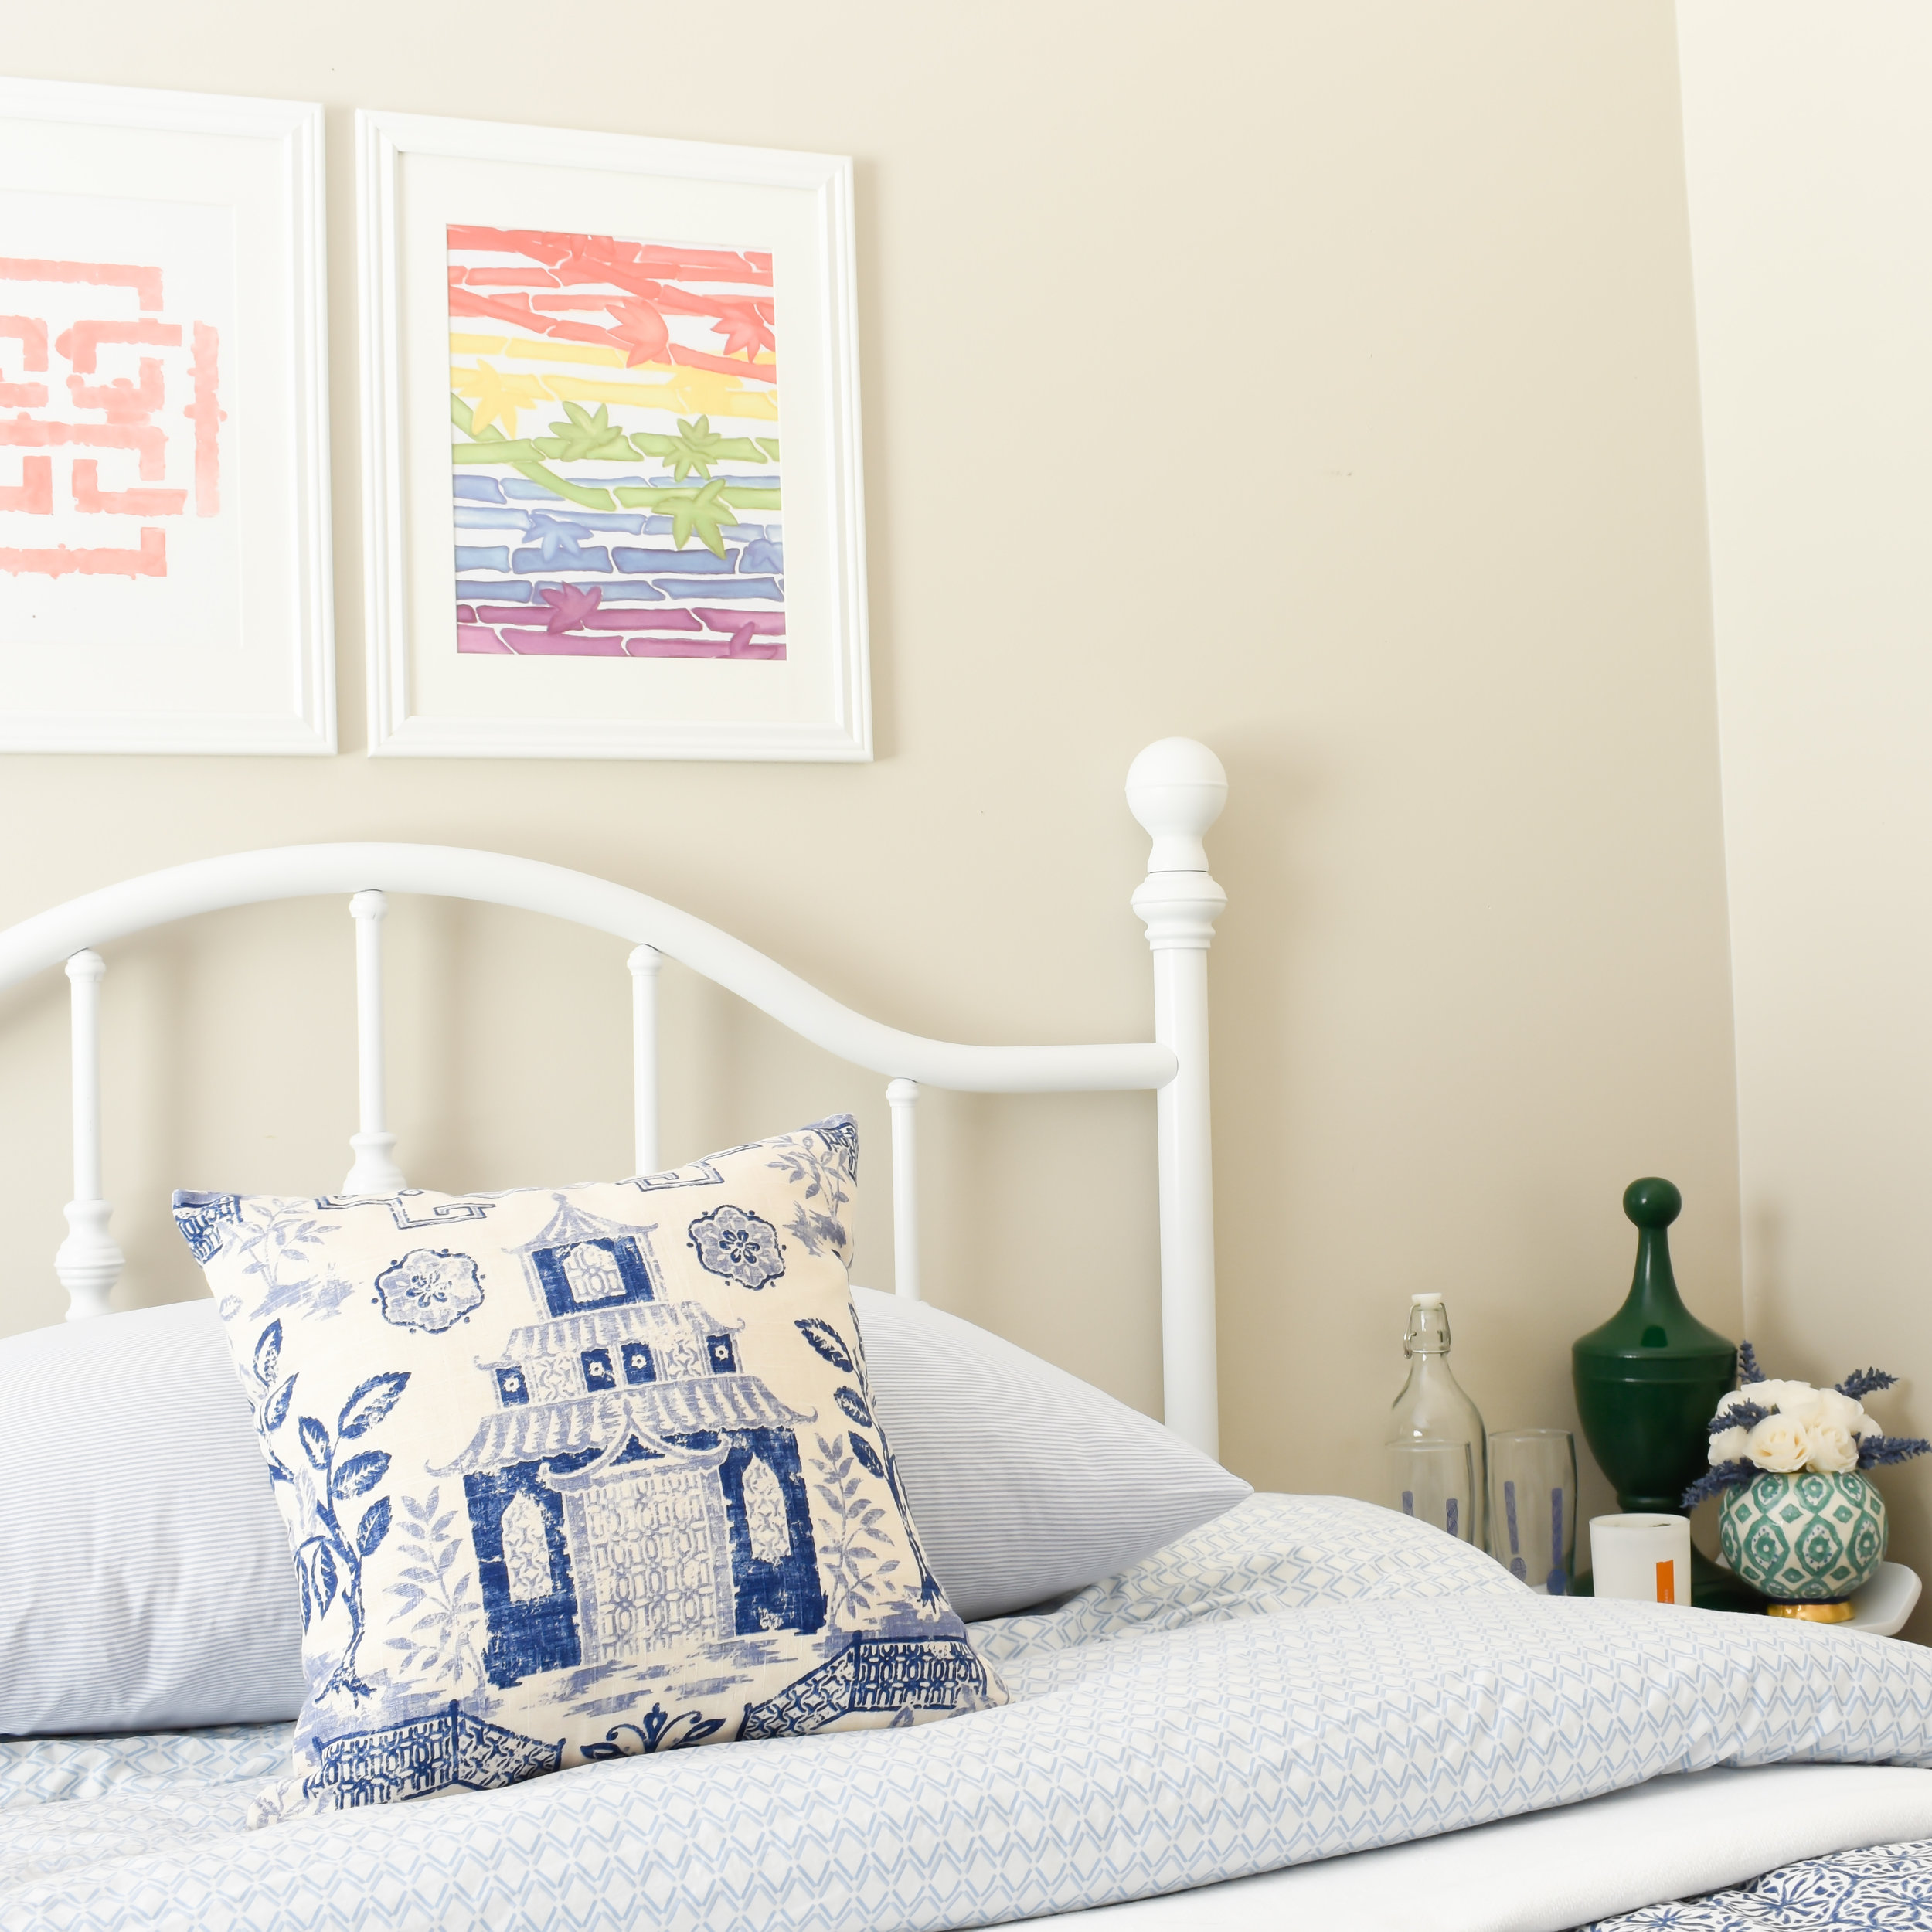 colorful artwork brings playfulness to this blue and white bedroom